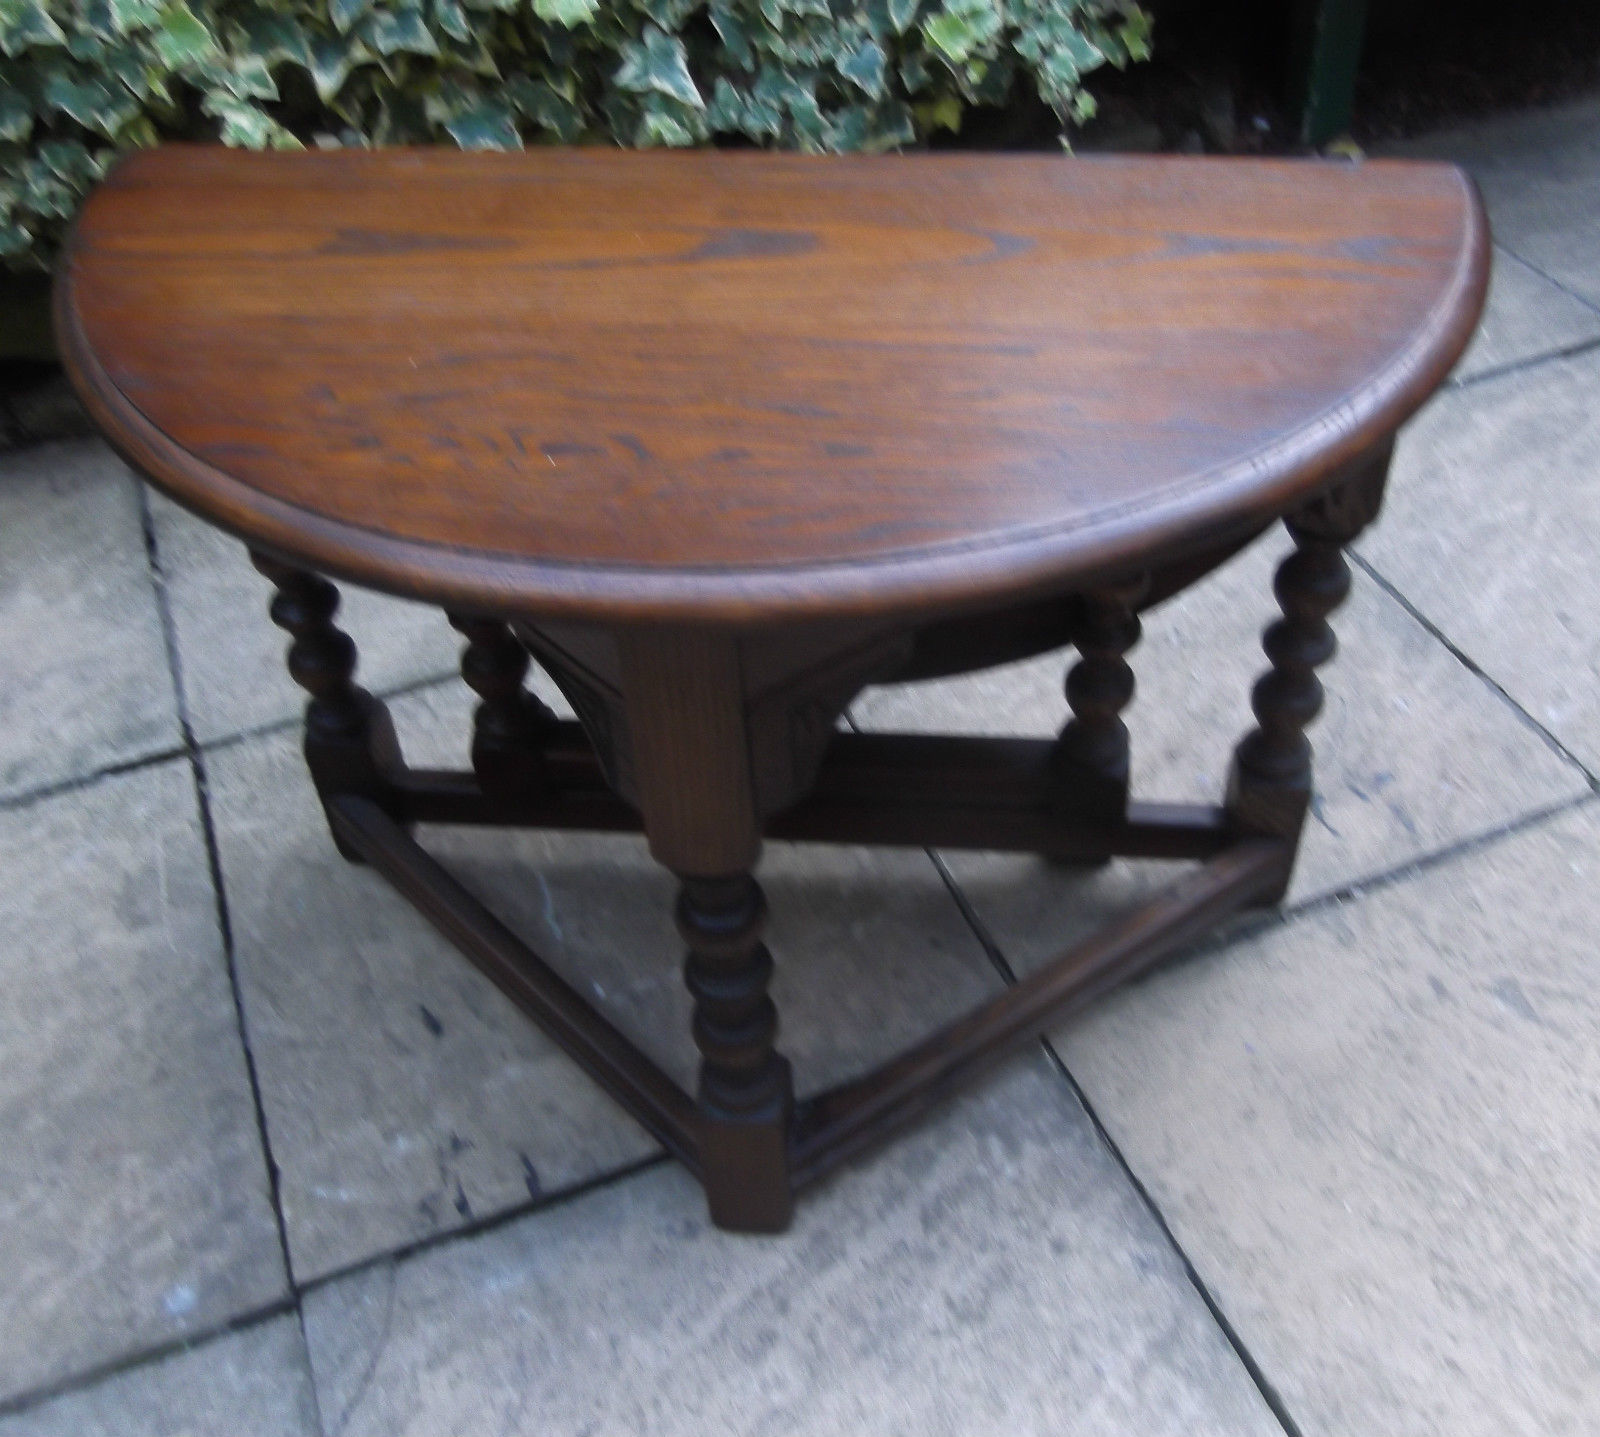 SUPERB MODERN OLD CHARM DROP LEAF COFFEE TABLE VERY CLEAN